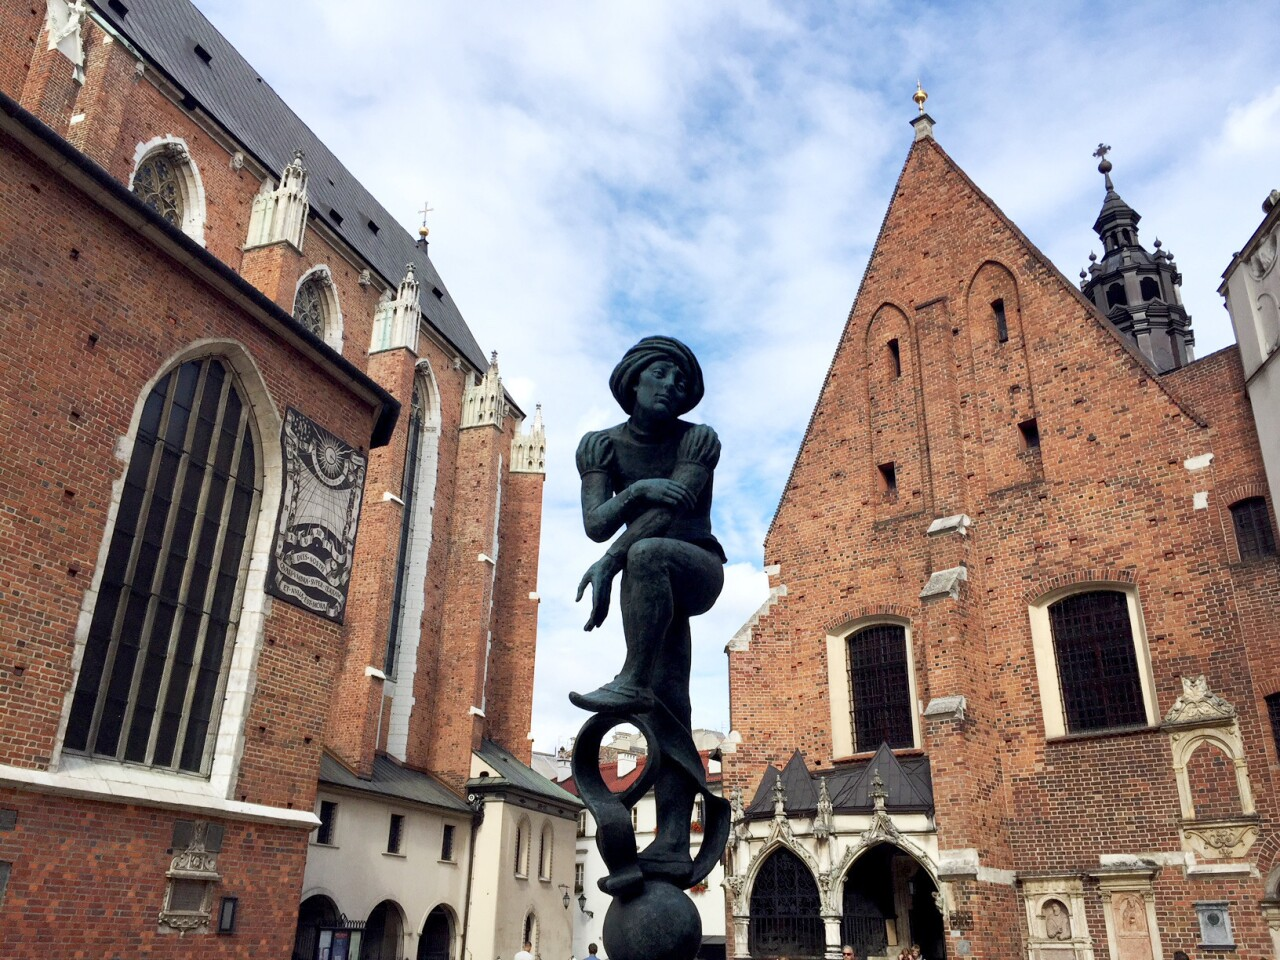 A statue of a medieval student between the churches of St. Mary and St. Barbara in Krakow's Medieval Centerpays tribute to the city's heritage as a university town.